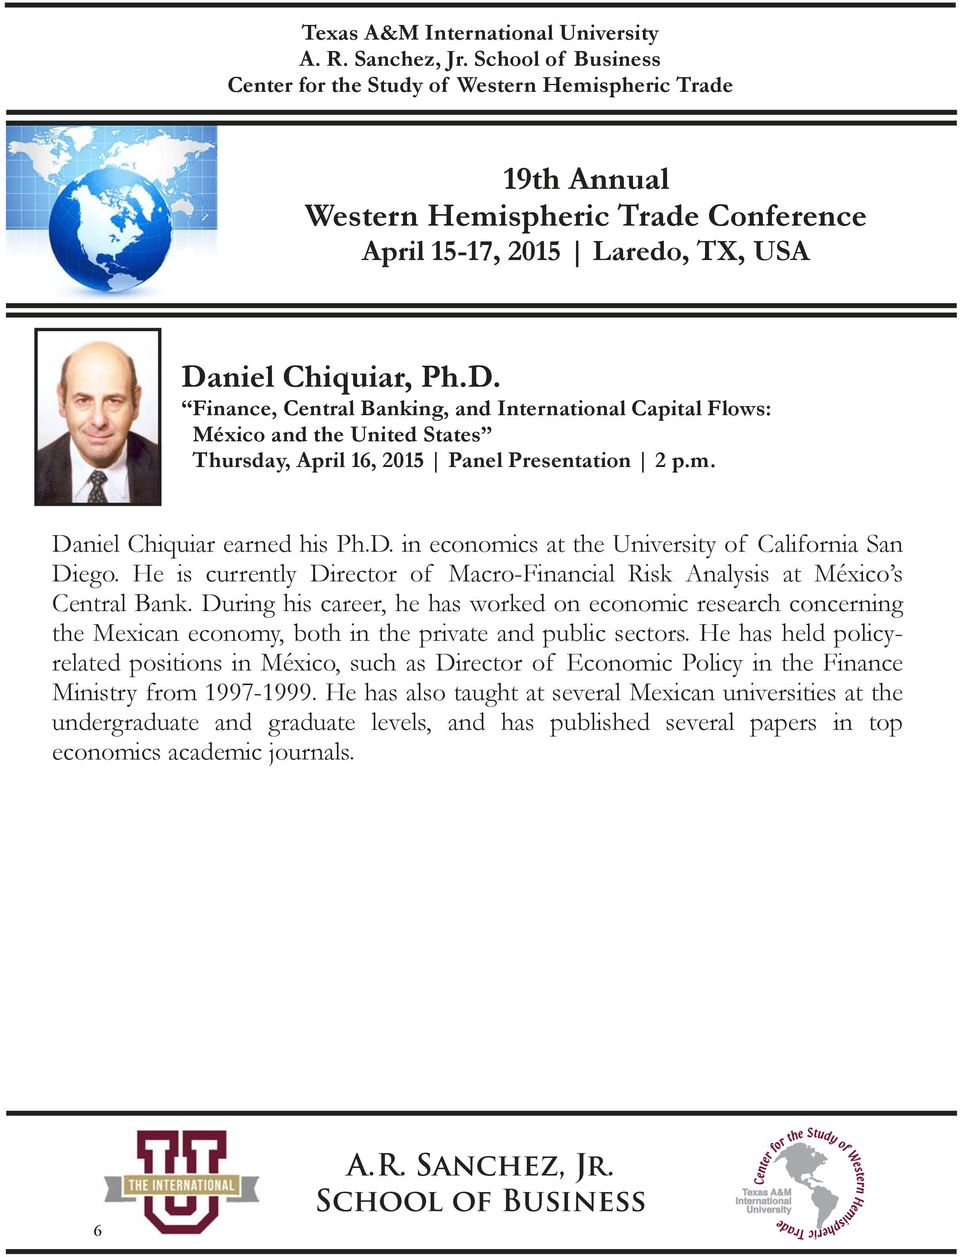 niel Chiquiar, Ph.D. Finance, Central Banking, and International Capital Flows: México and the United States Thursday, April 16, 2015 Panel Presentation 2 p.m. Daniel Chiquiar earned his Ph.D. in economics at the University of California San Diego.